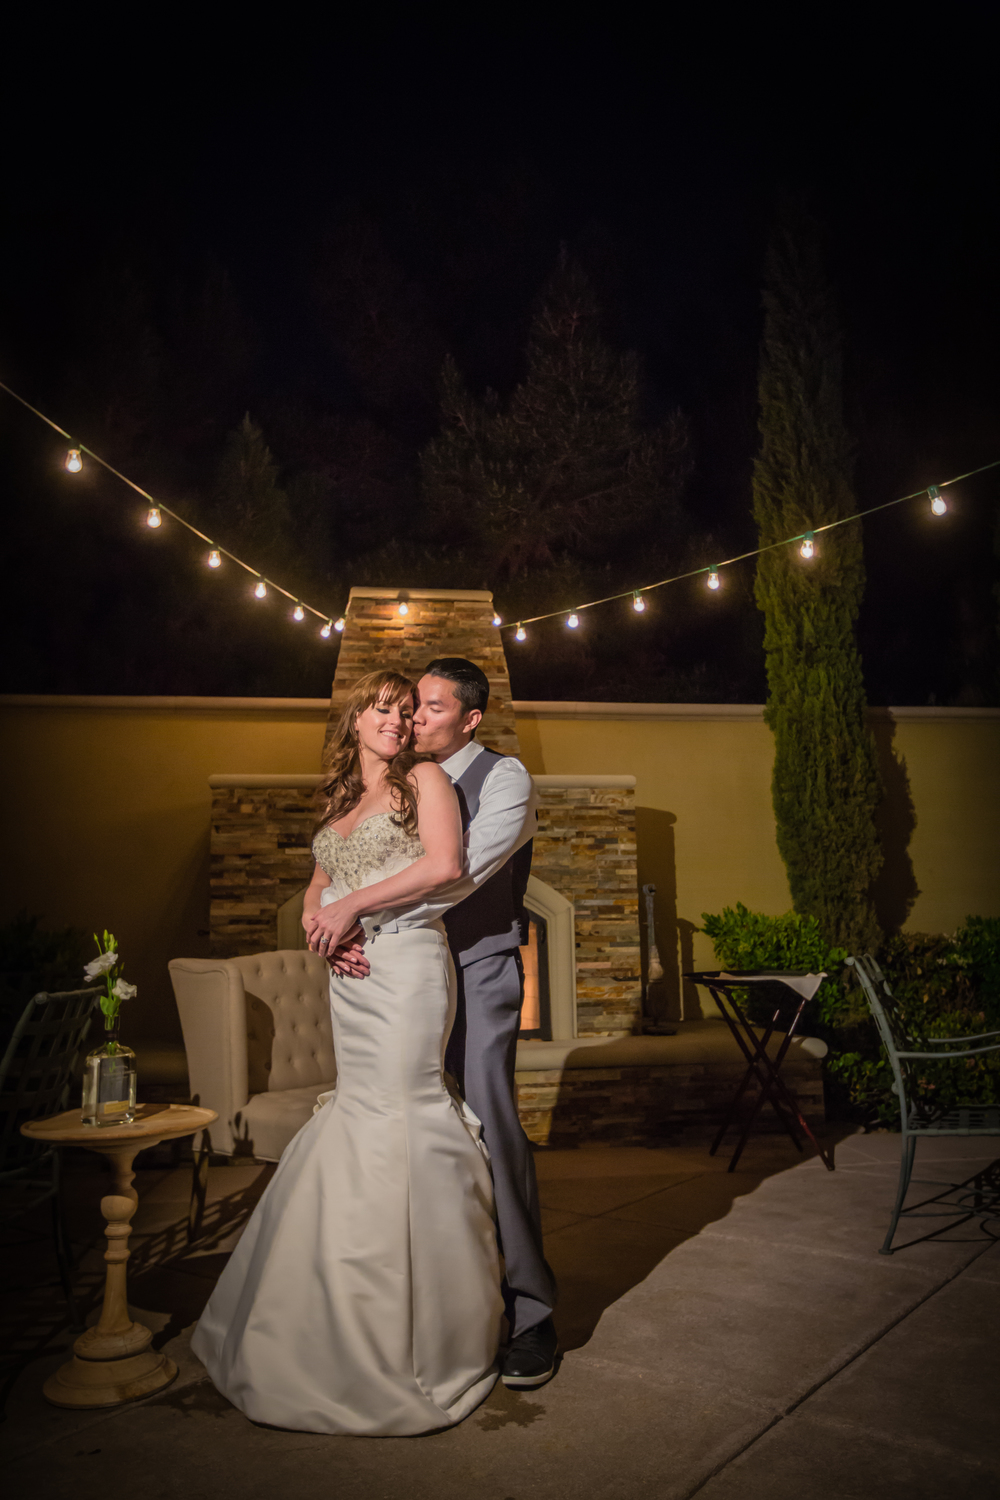 Featured on Junebug Weddings :  Michelle and Michael fell in love at the gym.  They wanted a wedding that showcased their love of the outdoors, food, and family.  With a groom who bought out the bride's soft, romantic side we opted for a palette of peach and ivory, adding vintage furniture and lighting elements throughout to keep the day feeling timeless.   Las Vegas Wedding Planner Andrea Eppolito  |  Photography by  Ella Gagiano  |  Wedding Dress and Veil:   Victor Harper Couture  and  Couture Bride Las Vegas  |  Groom's Tux by  Vera Wang Black |  Floral and Decor by  Naakiti Floral